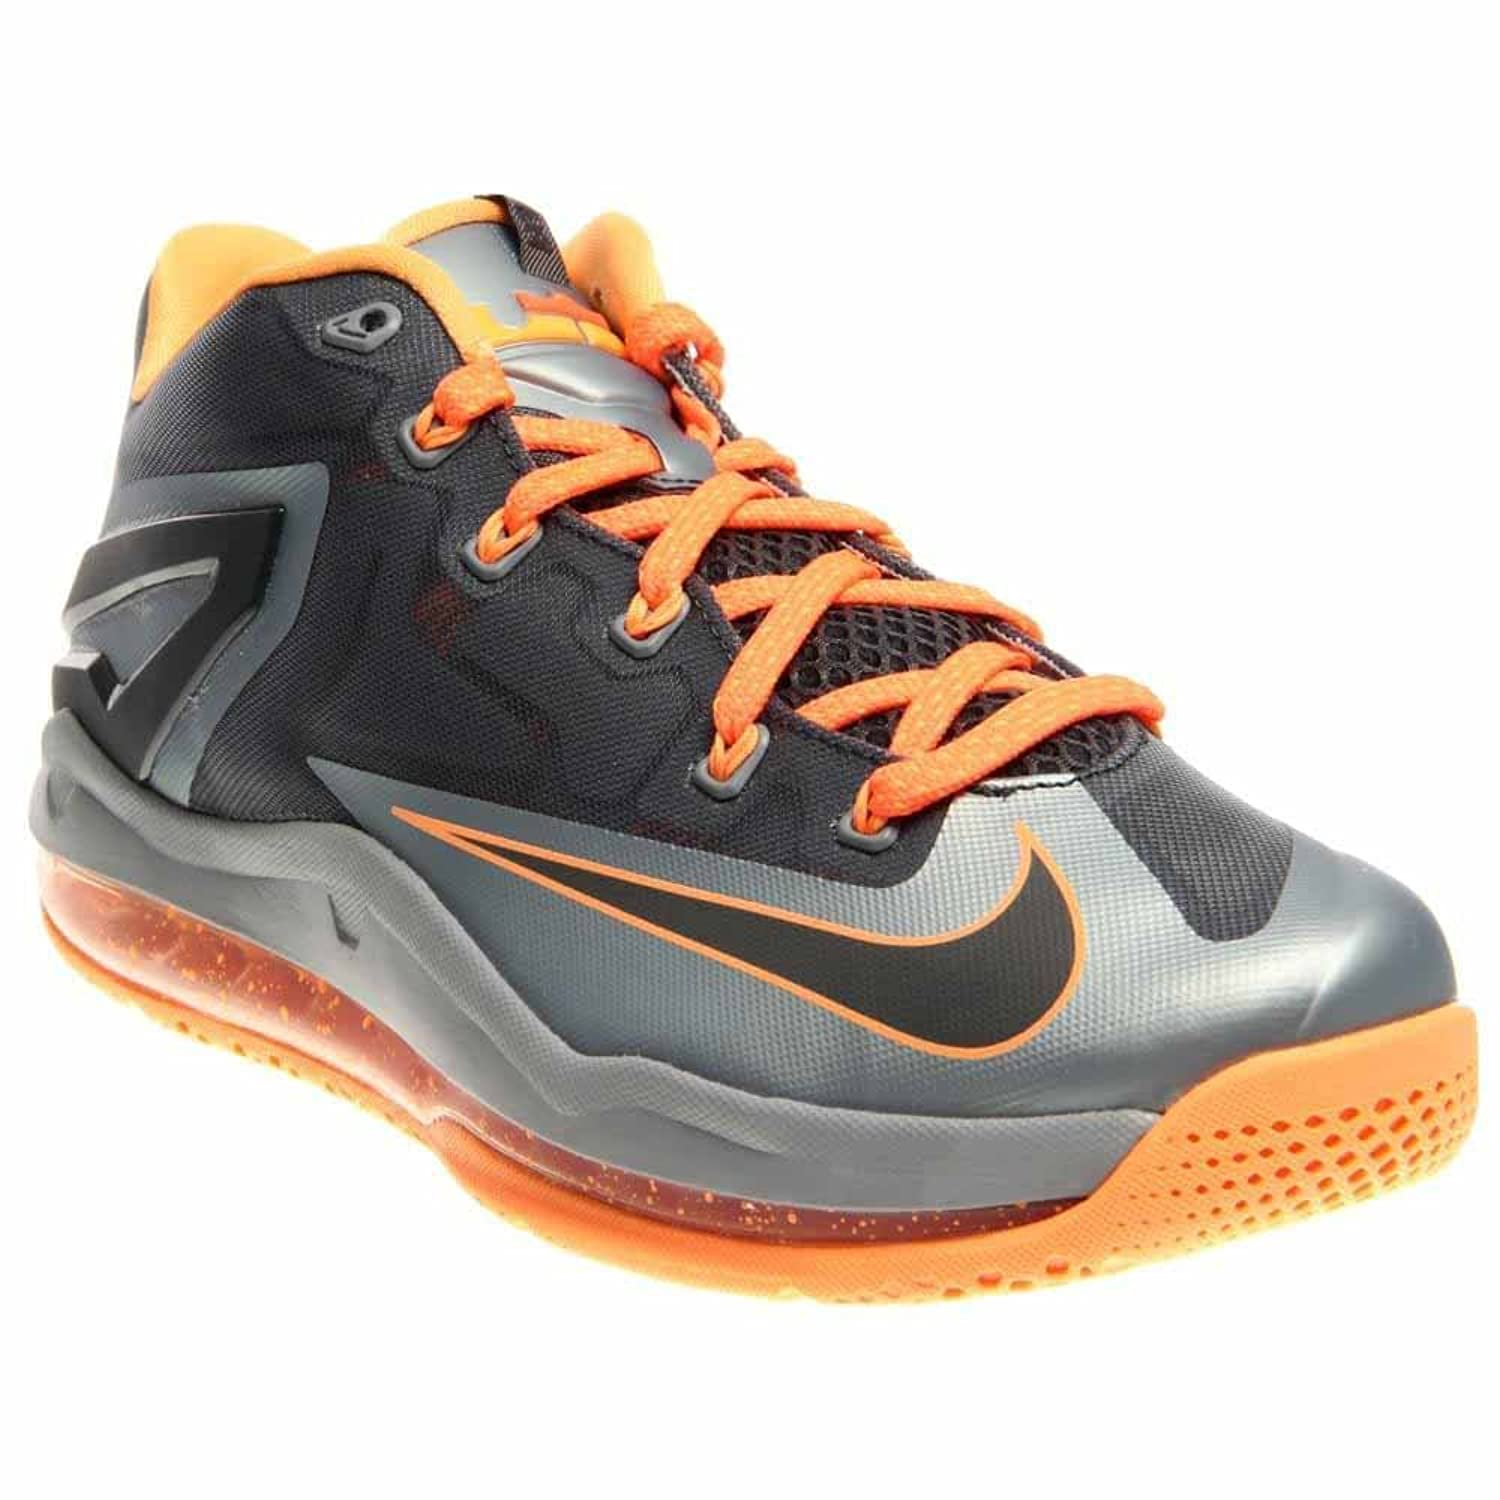 Nike Max Lebron XI Low Men Sneakers Light Magnet Grey/Magnet Grey/Bright  Mango